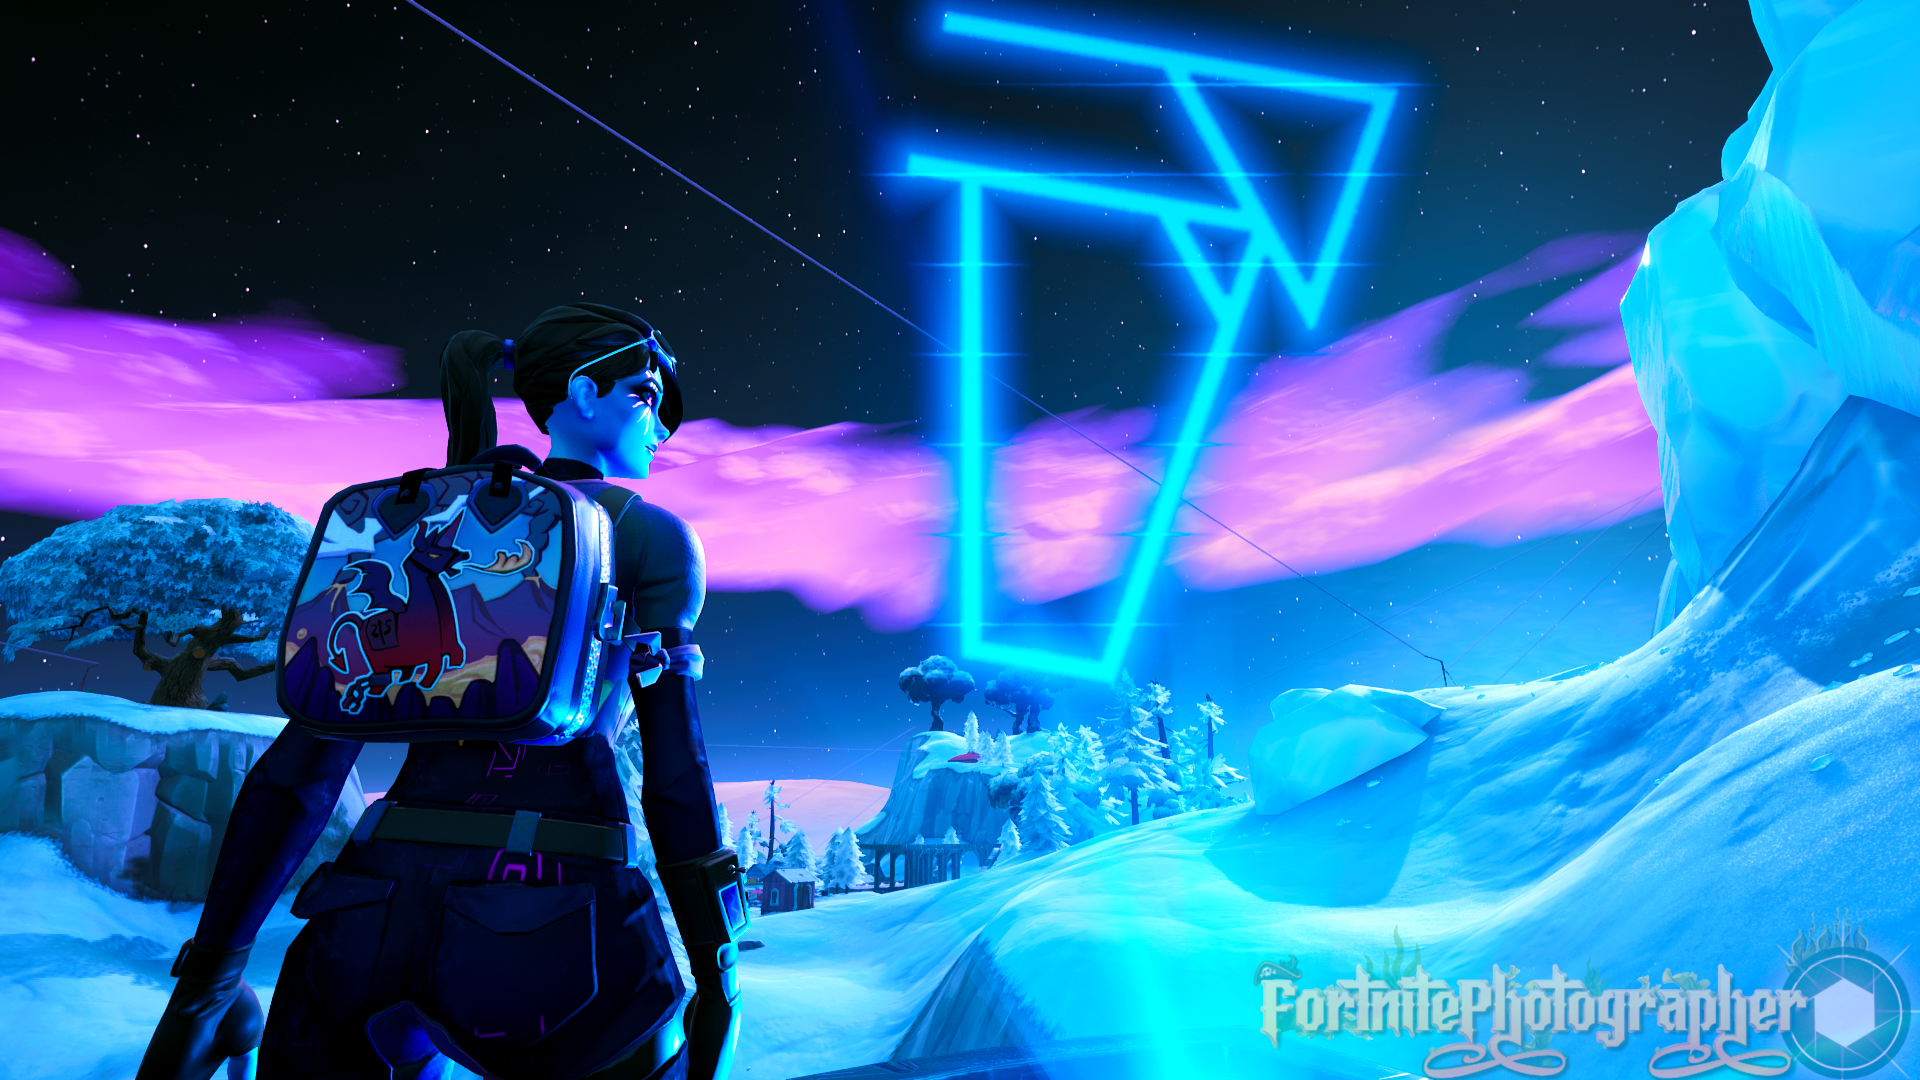 We Are Not Alone I Hope Kevin Comes Back Yes Yes I Know Dark Bomber Again Im Sorry But I Love Her 3 Dark Bomber Set 07 Fortnite Epic Games Bomber